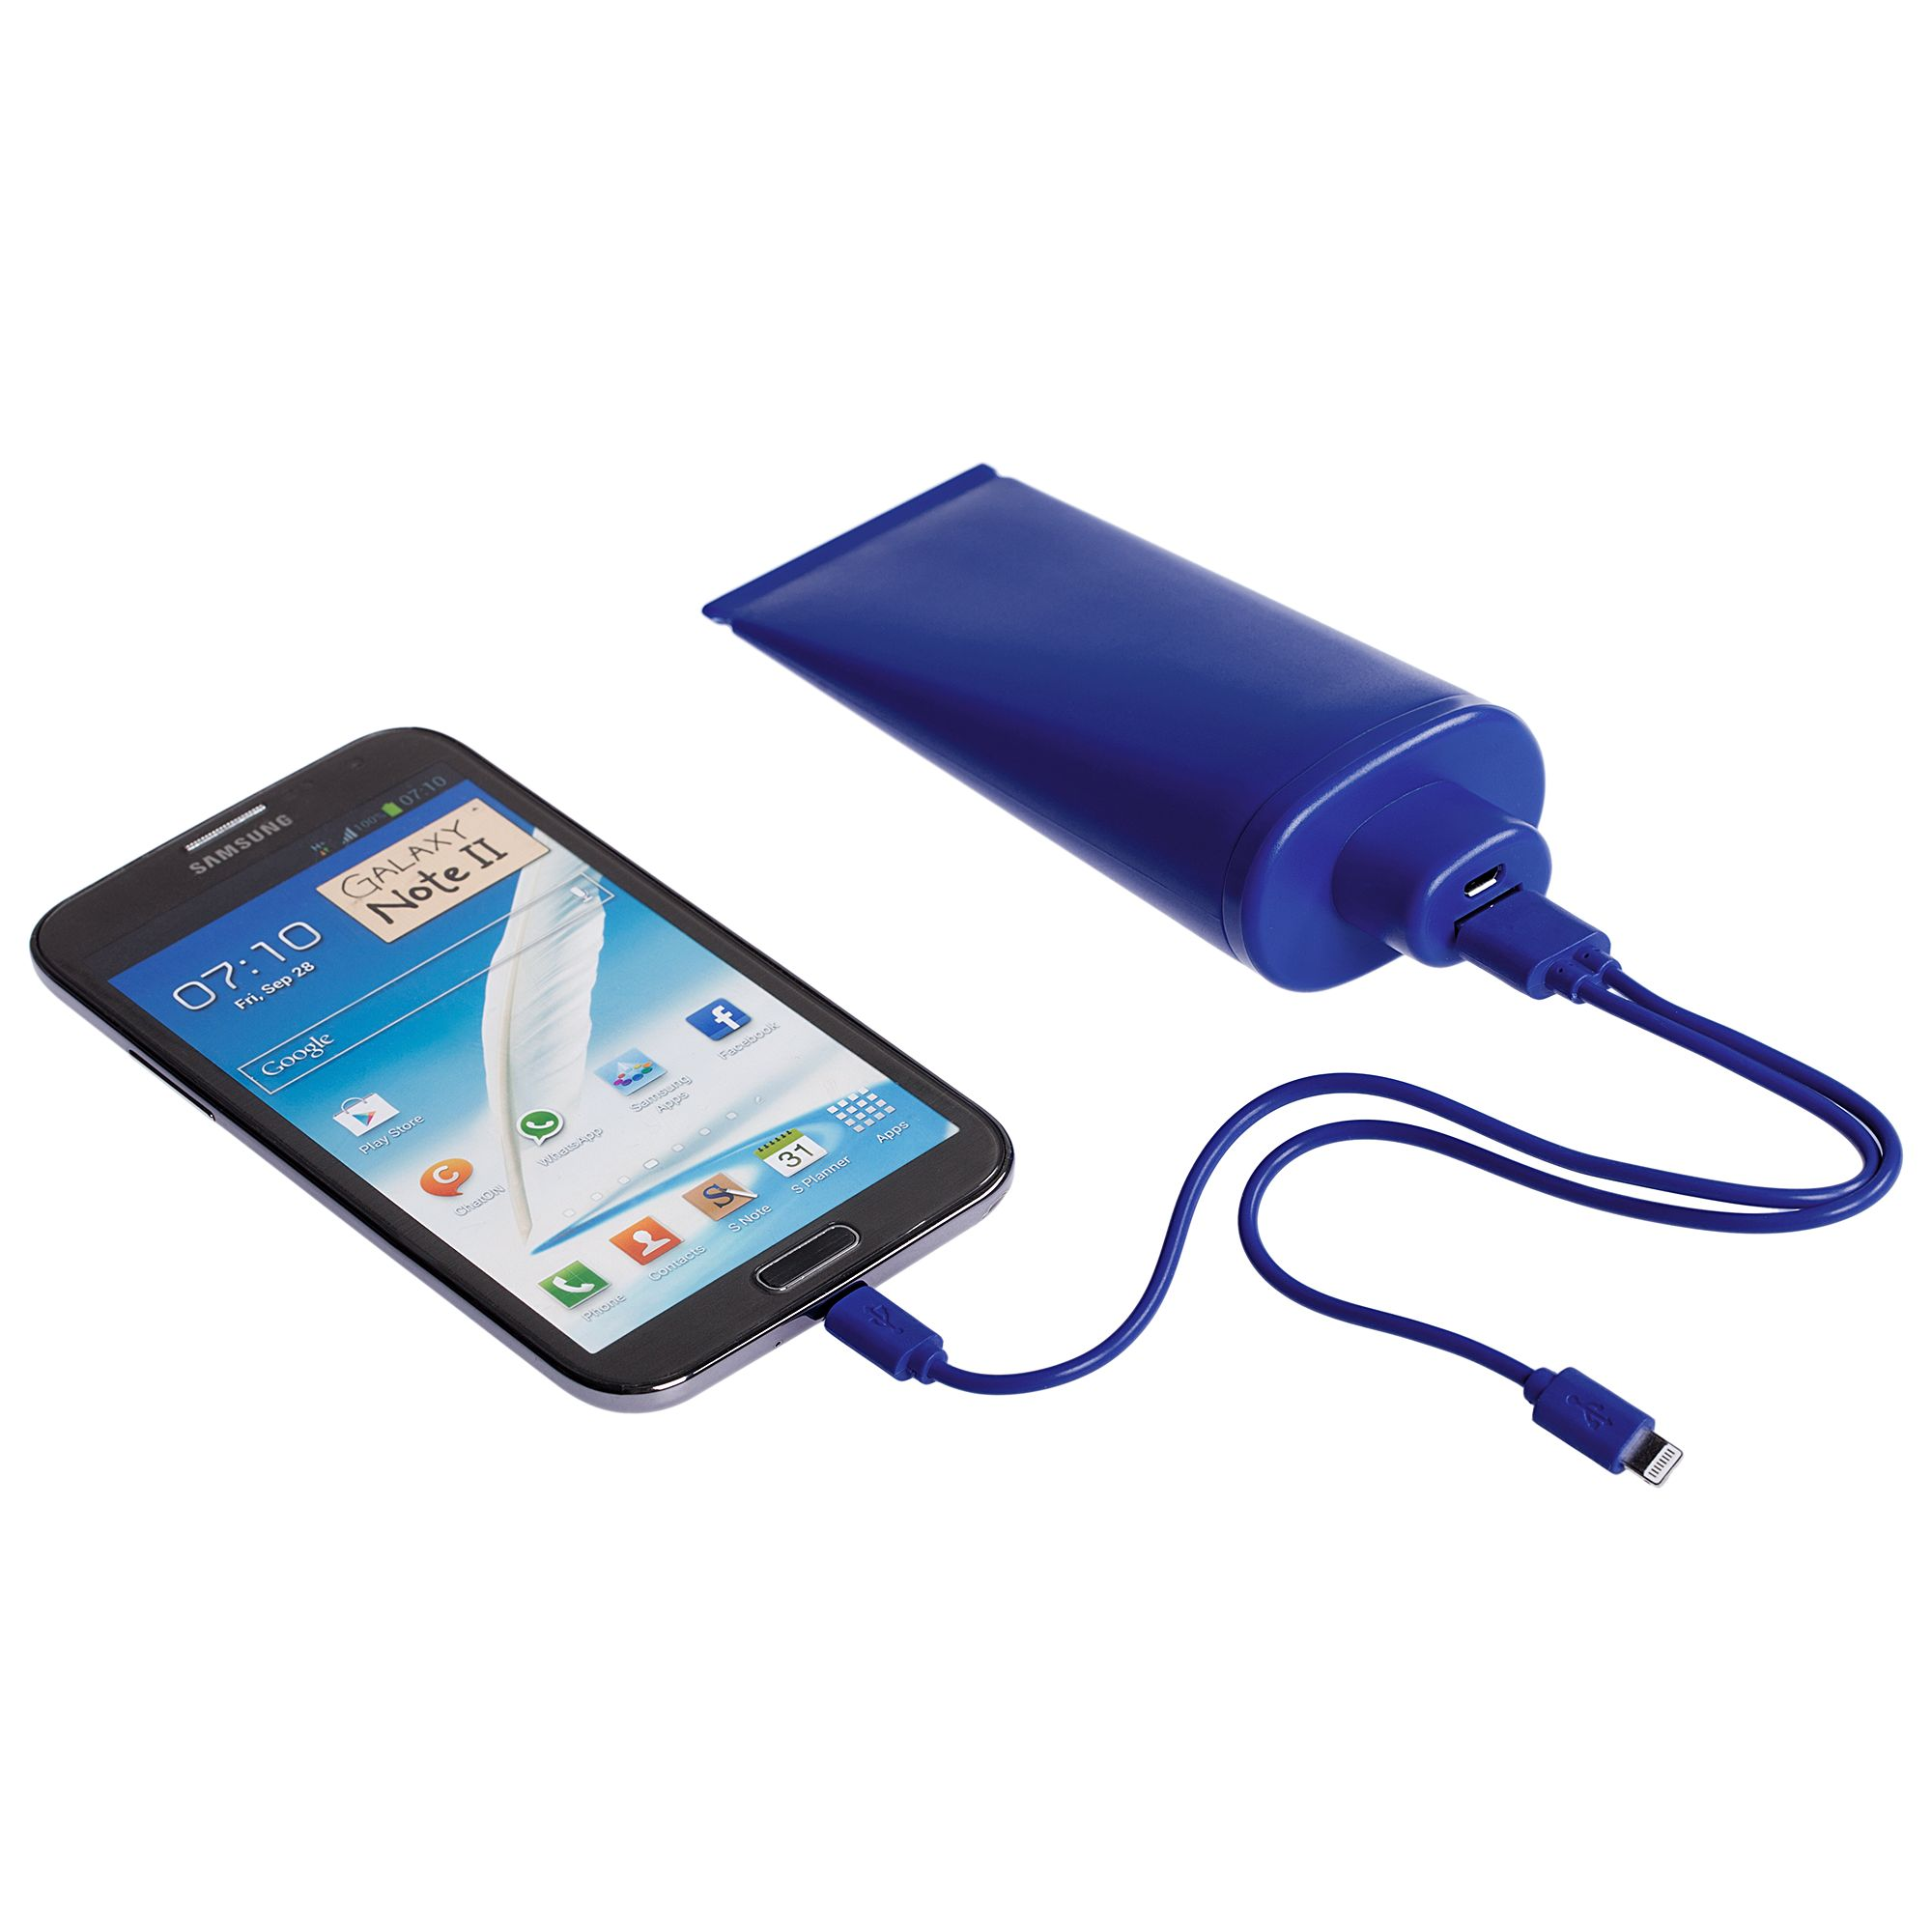 Powerbank Tube 6000 mAh PR-3003